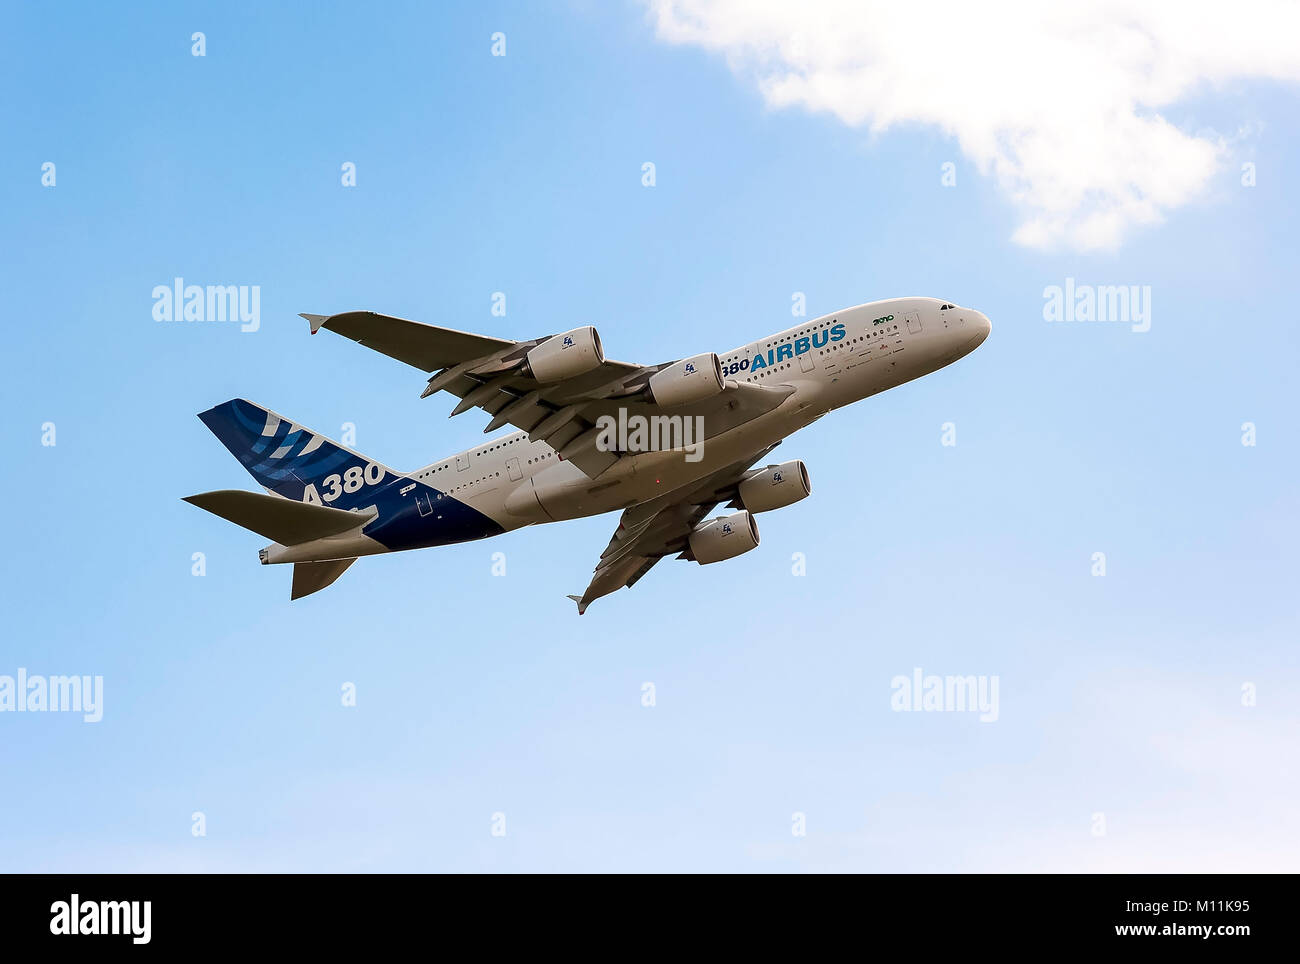 Prototype Airbus A380 at an airshow in Gloucestershire England UK - Stock Image